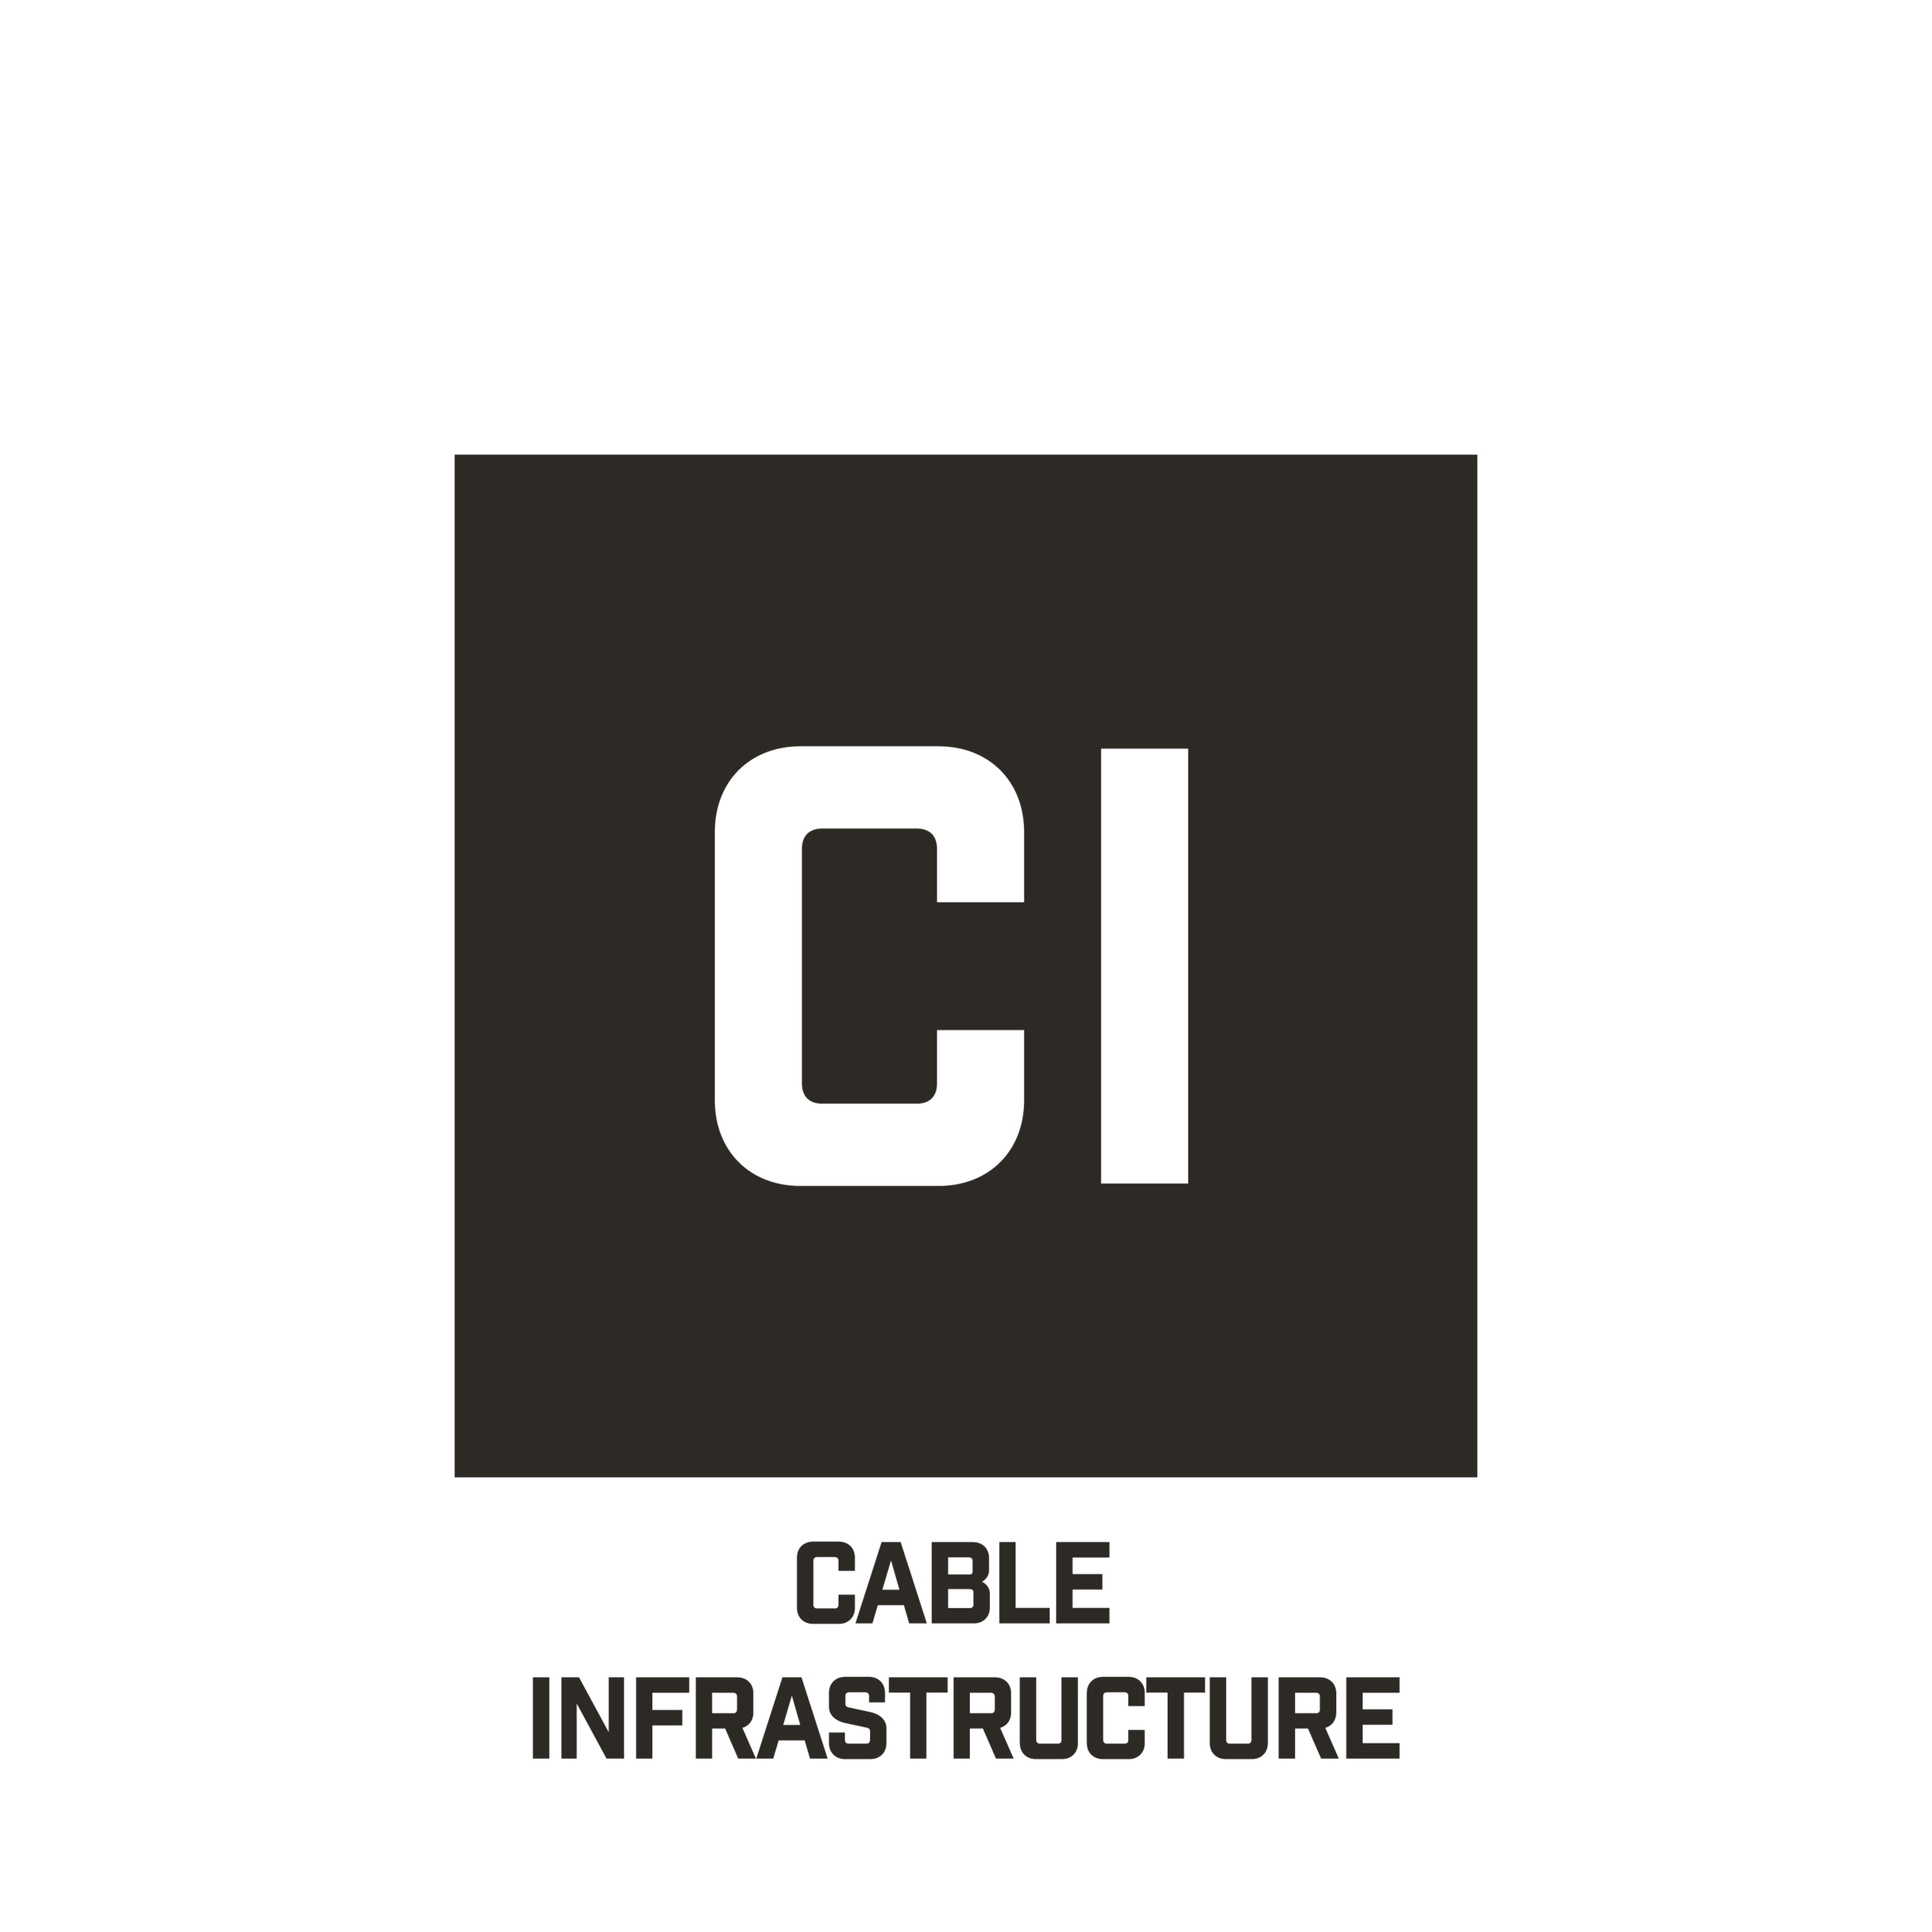 - Our CI team superbly represents our clients with detailed designs, precisiondrawings, thorough coordination and comprehensive construction management.